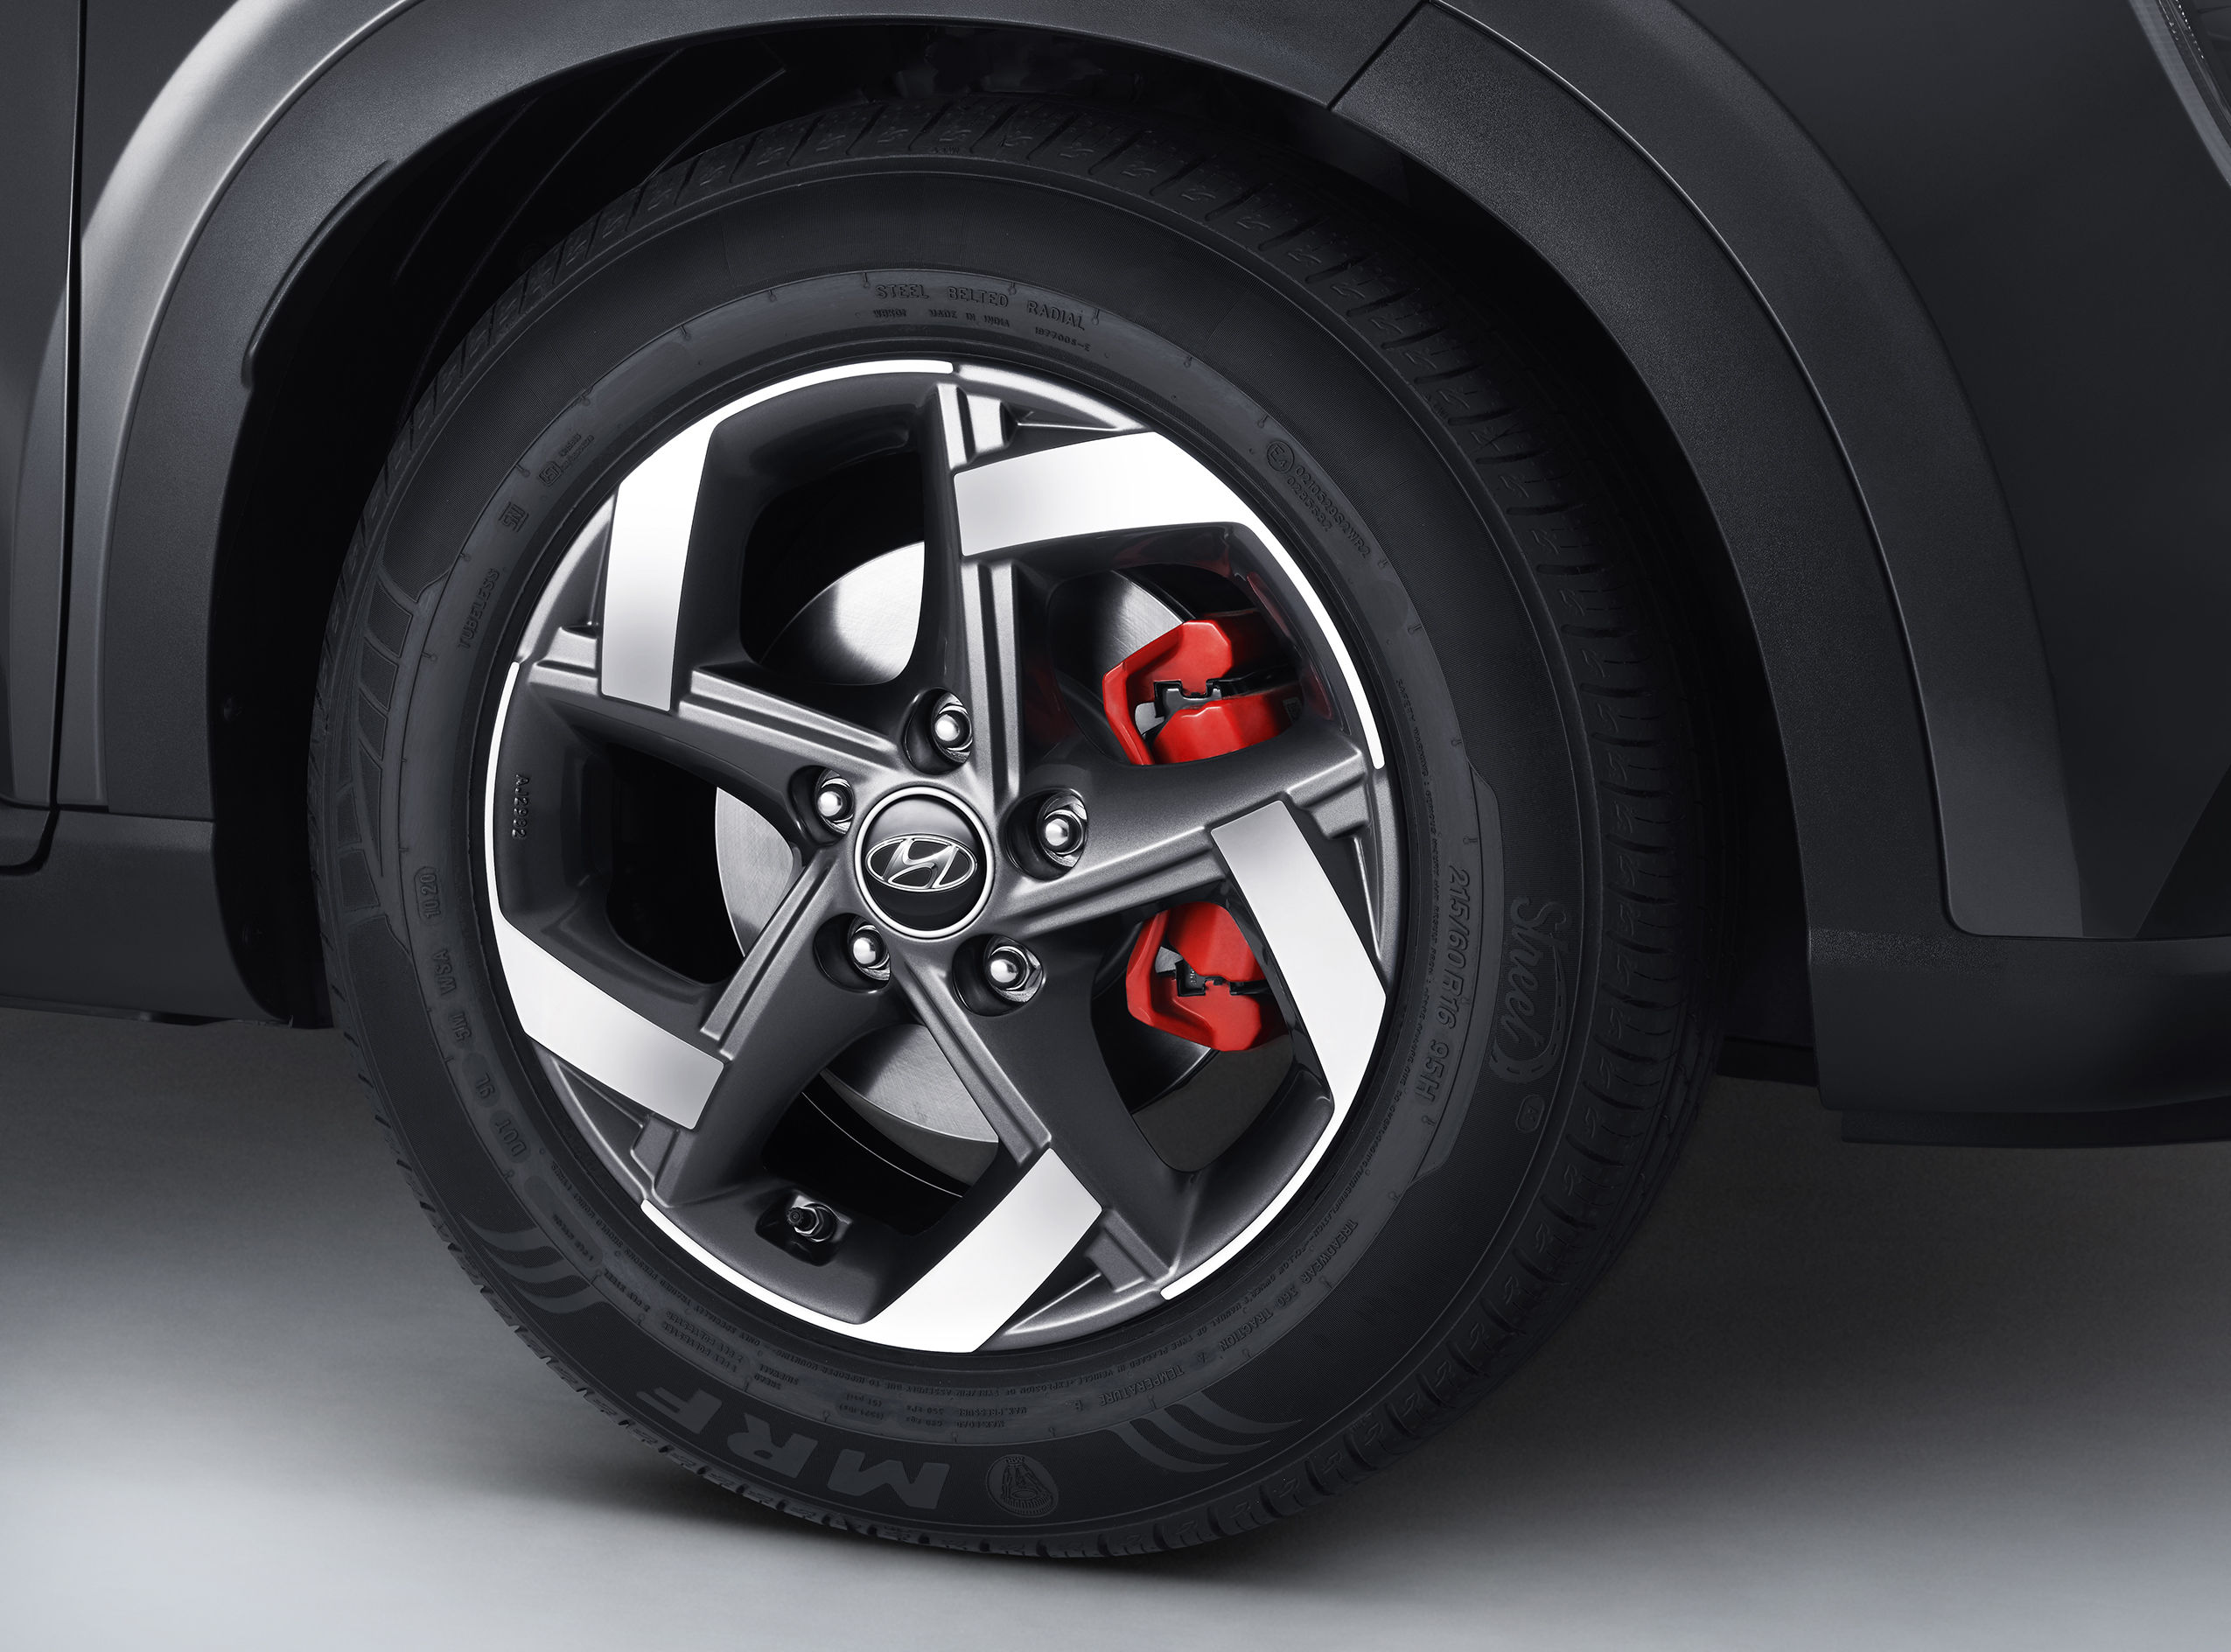 The car also gets a SPORT emblem and red brake calipers, It is offered in two dual-tone colour options - grey with black roof, and white with black roof.